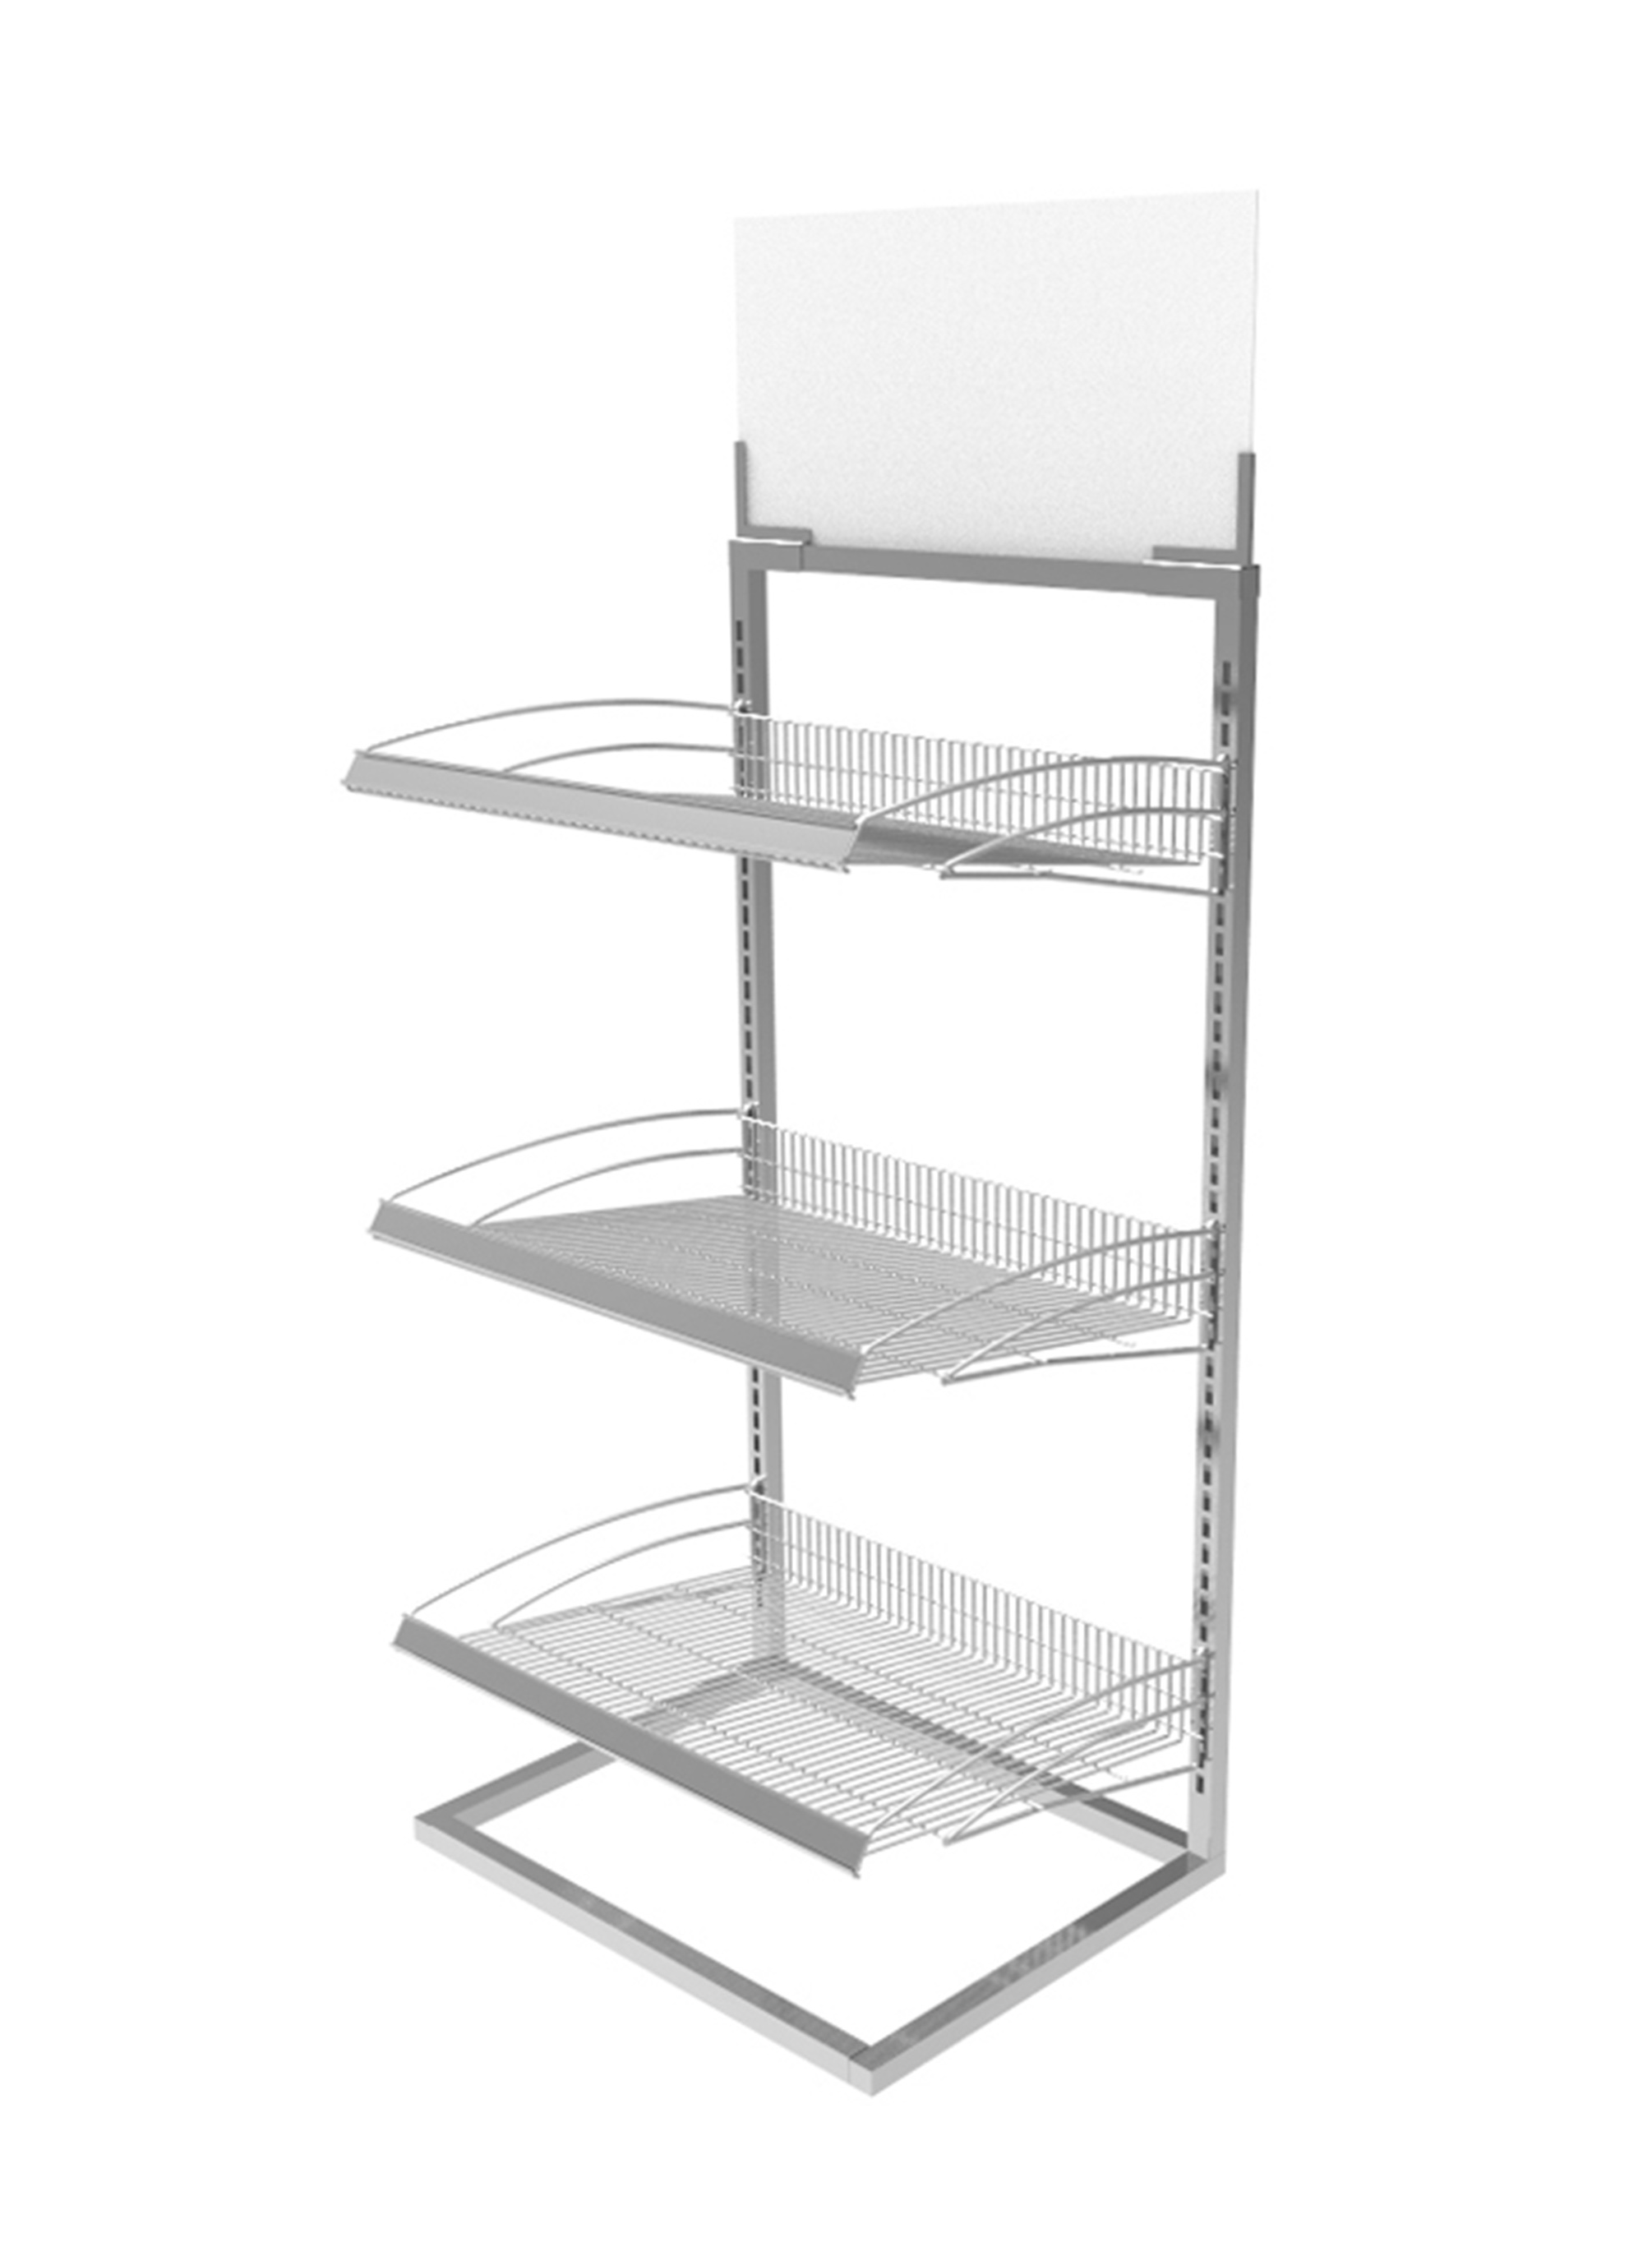 Exhibition Stand Organizer : Beverage rack metal bakery confectionary display